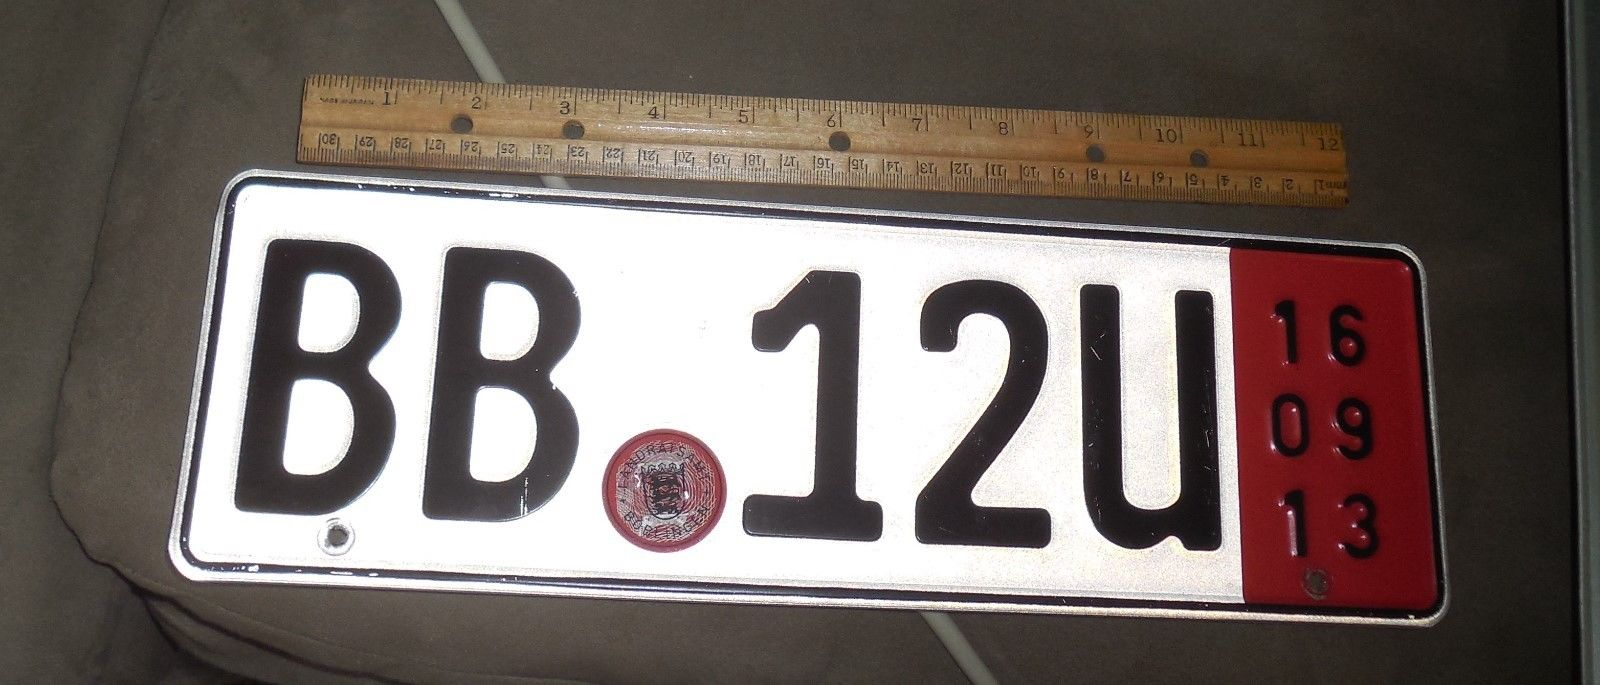 BB 12U  foreign license plate temporary for transporting car   free shipping